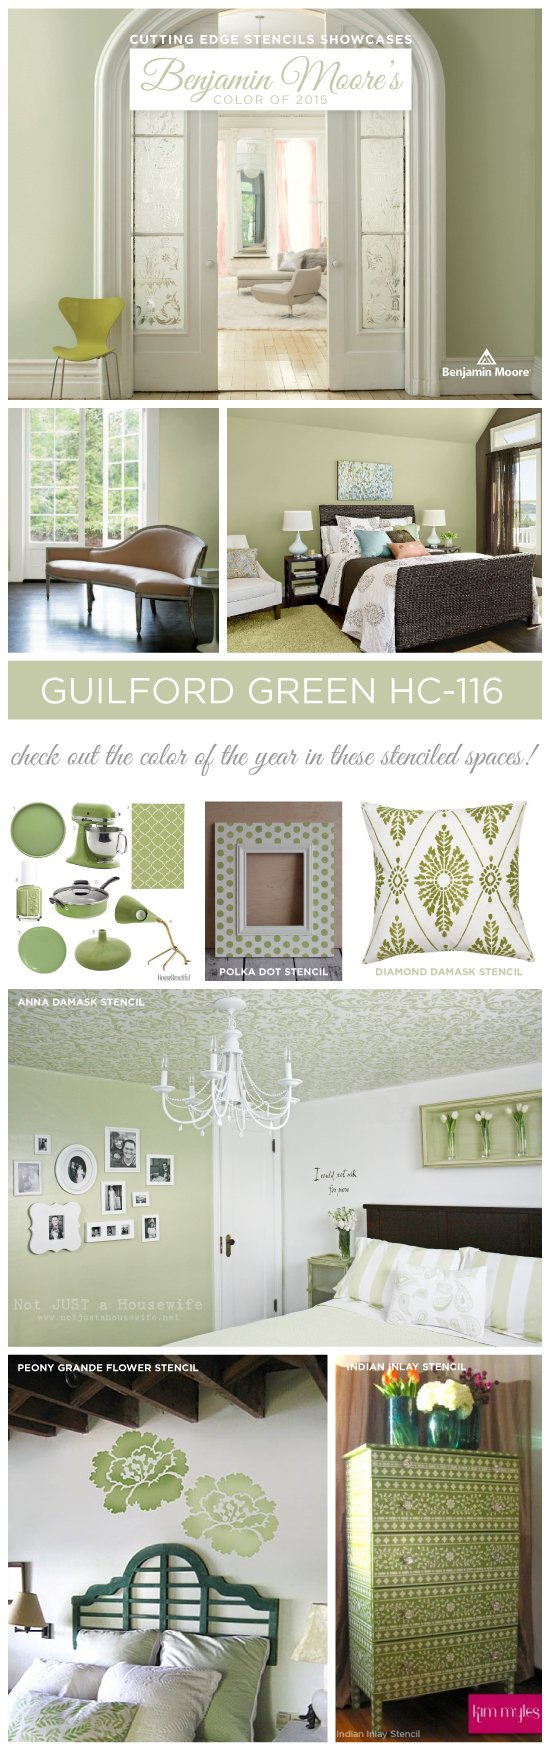 Green Home Designs Html on green psd, green heavy paper, green networking, green asp, green browser, green paradise along mekong river, green internet, green foundation, green google, green photoshop, green web, green android, green watercolor swatches, green microsoft office, green marketing,